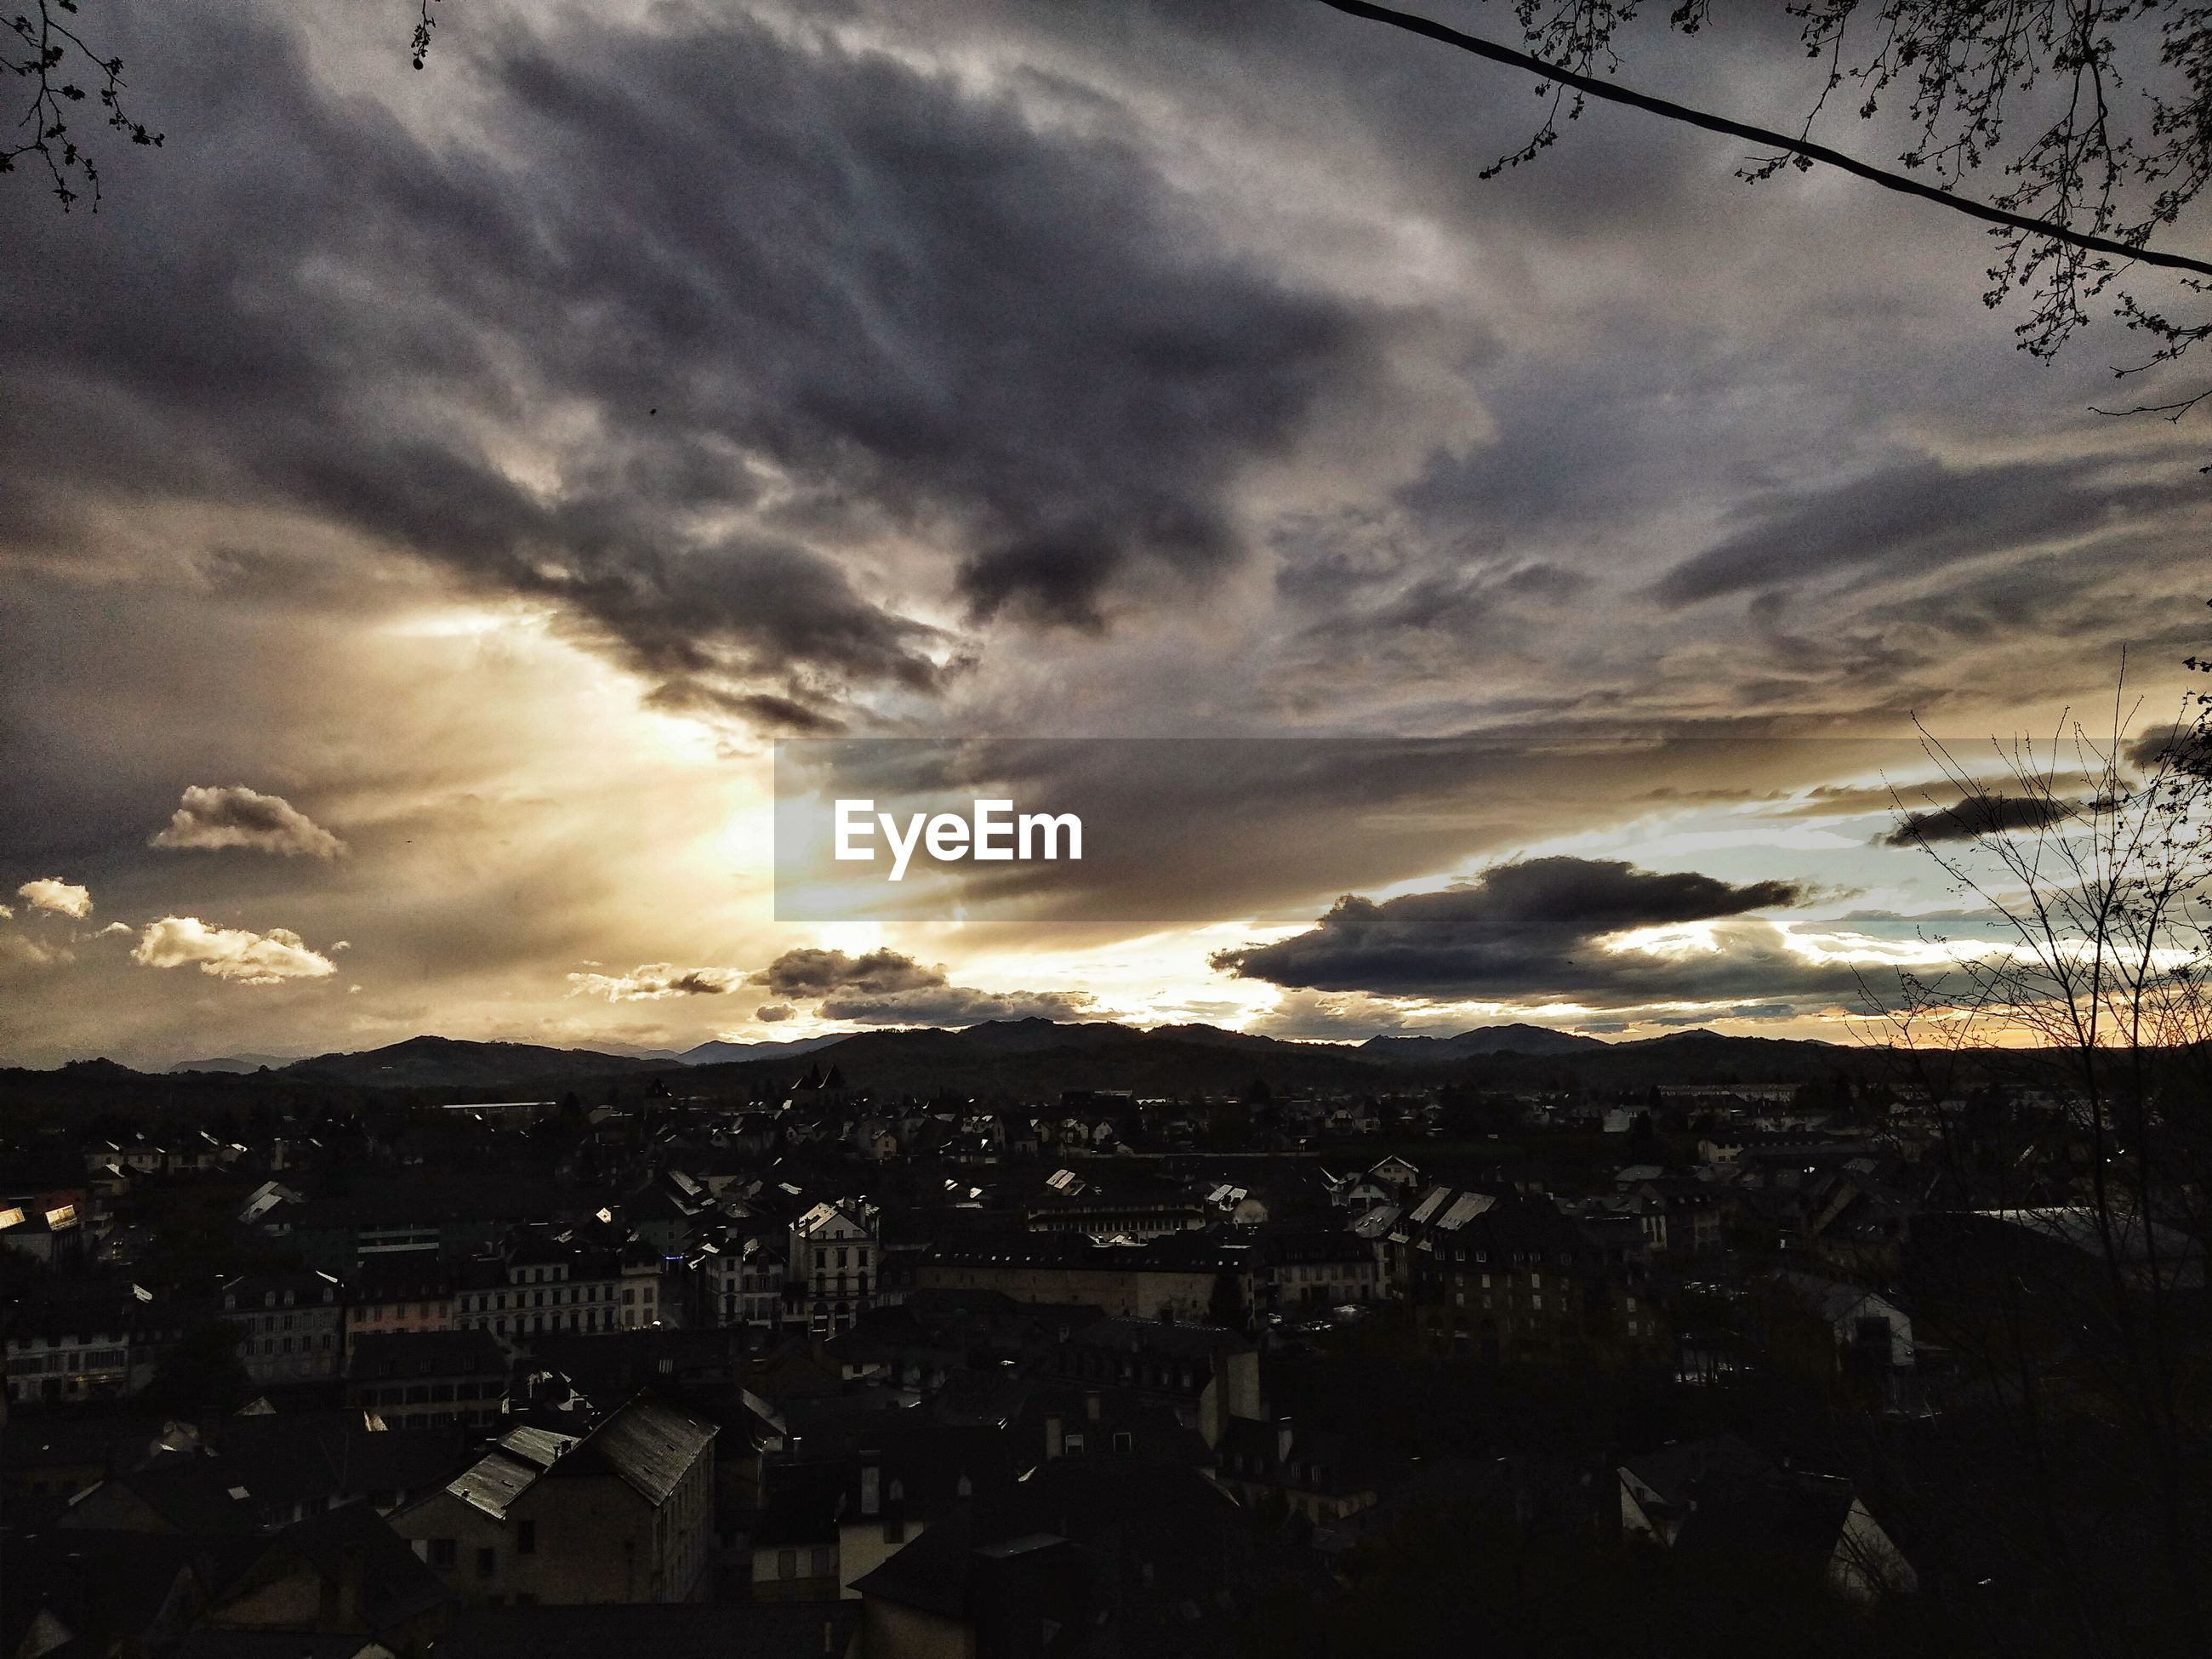 sky, cloud - sky, cloudy, sunset, scenics, cloud, landscape, building exterior, tranquil scene, beauty in nature, built structure, architecture, overcast, weather, nature, tranquility, cityscape, dusk, dramatic sky, high angle view